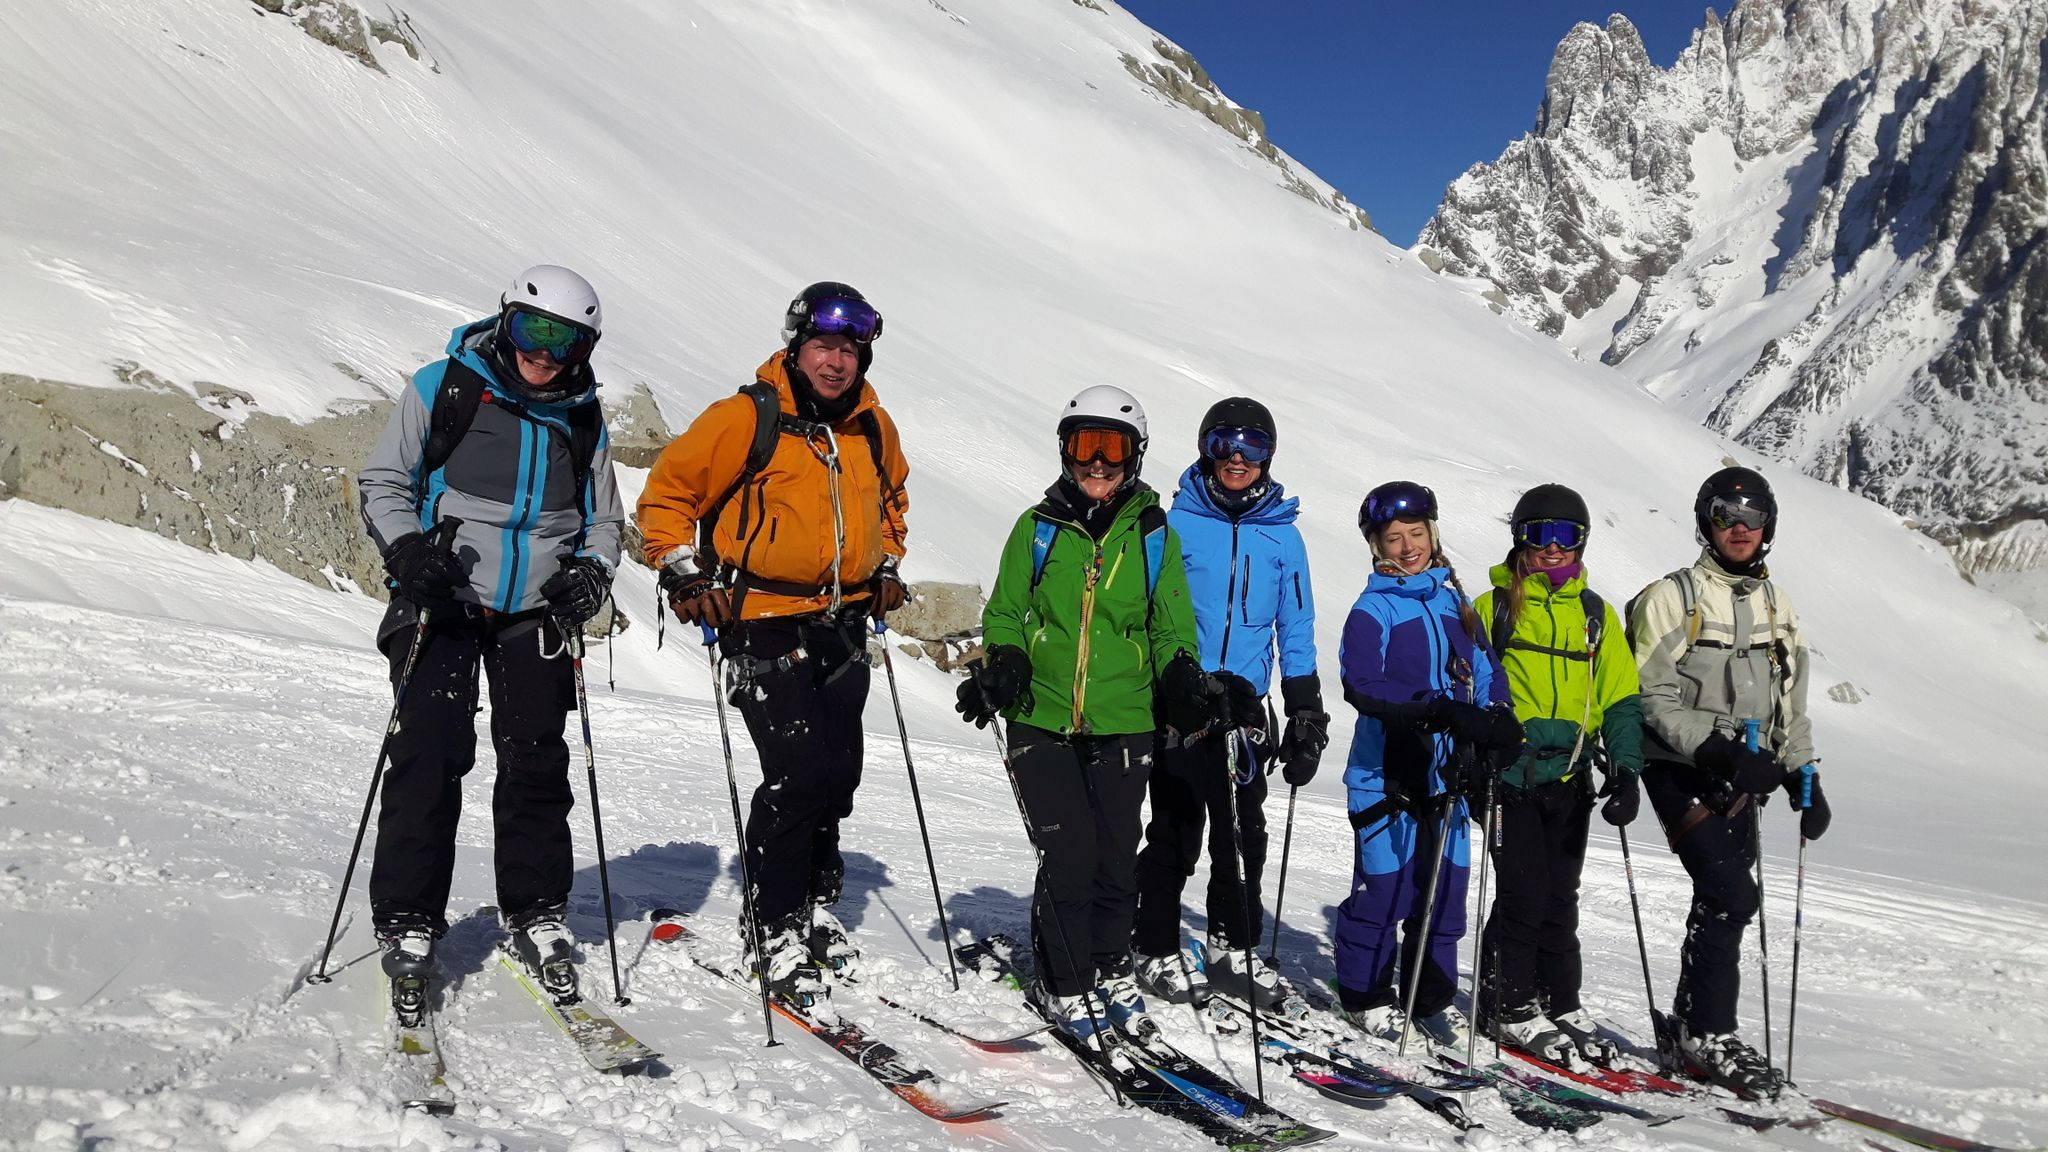 SK 18.02 07 skiing the Vallee Blanche rs.jpeg